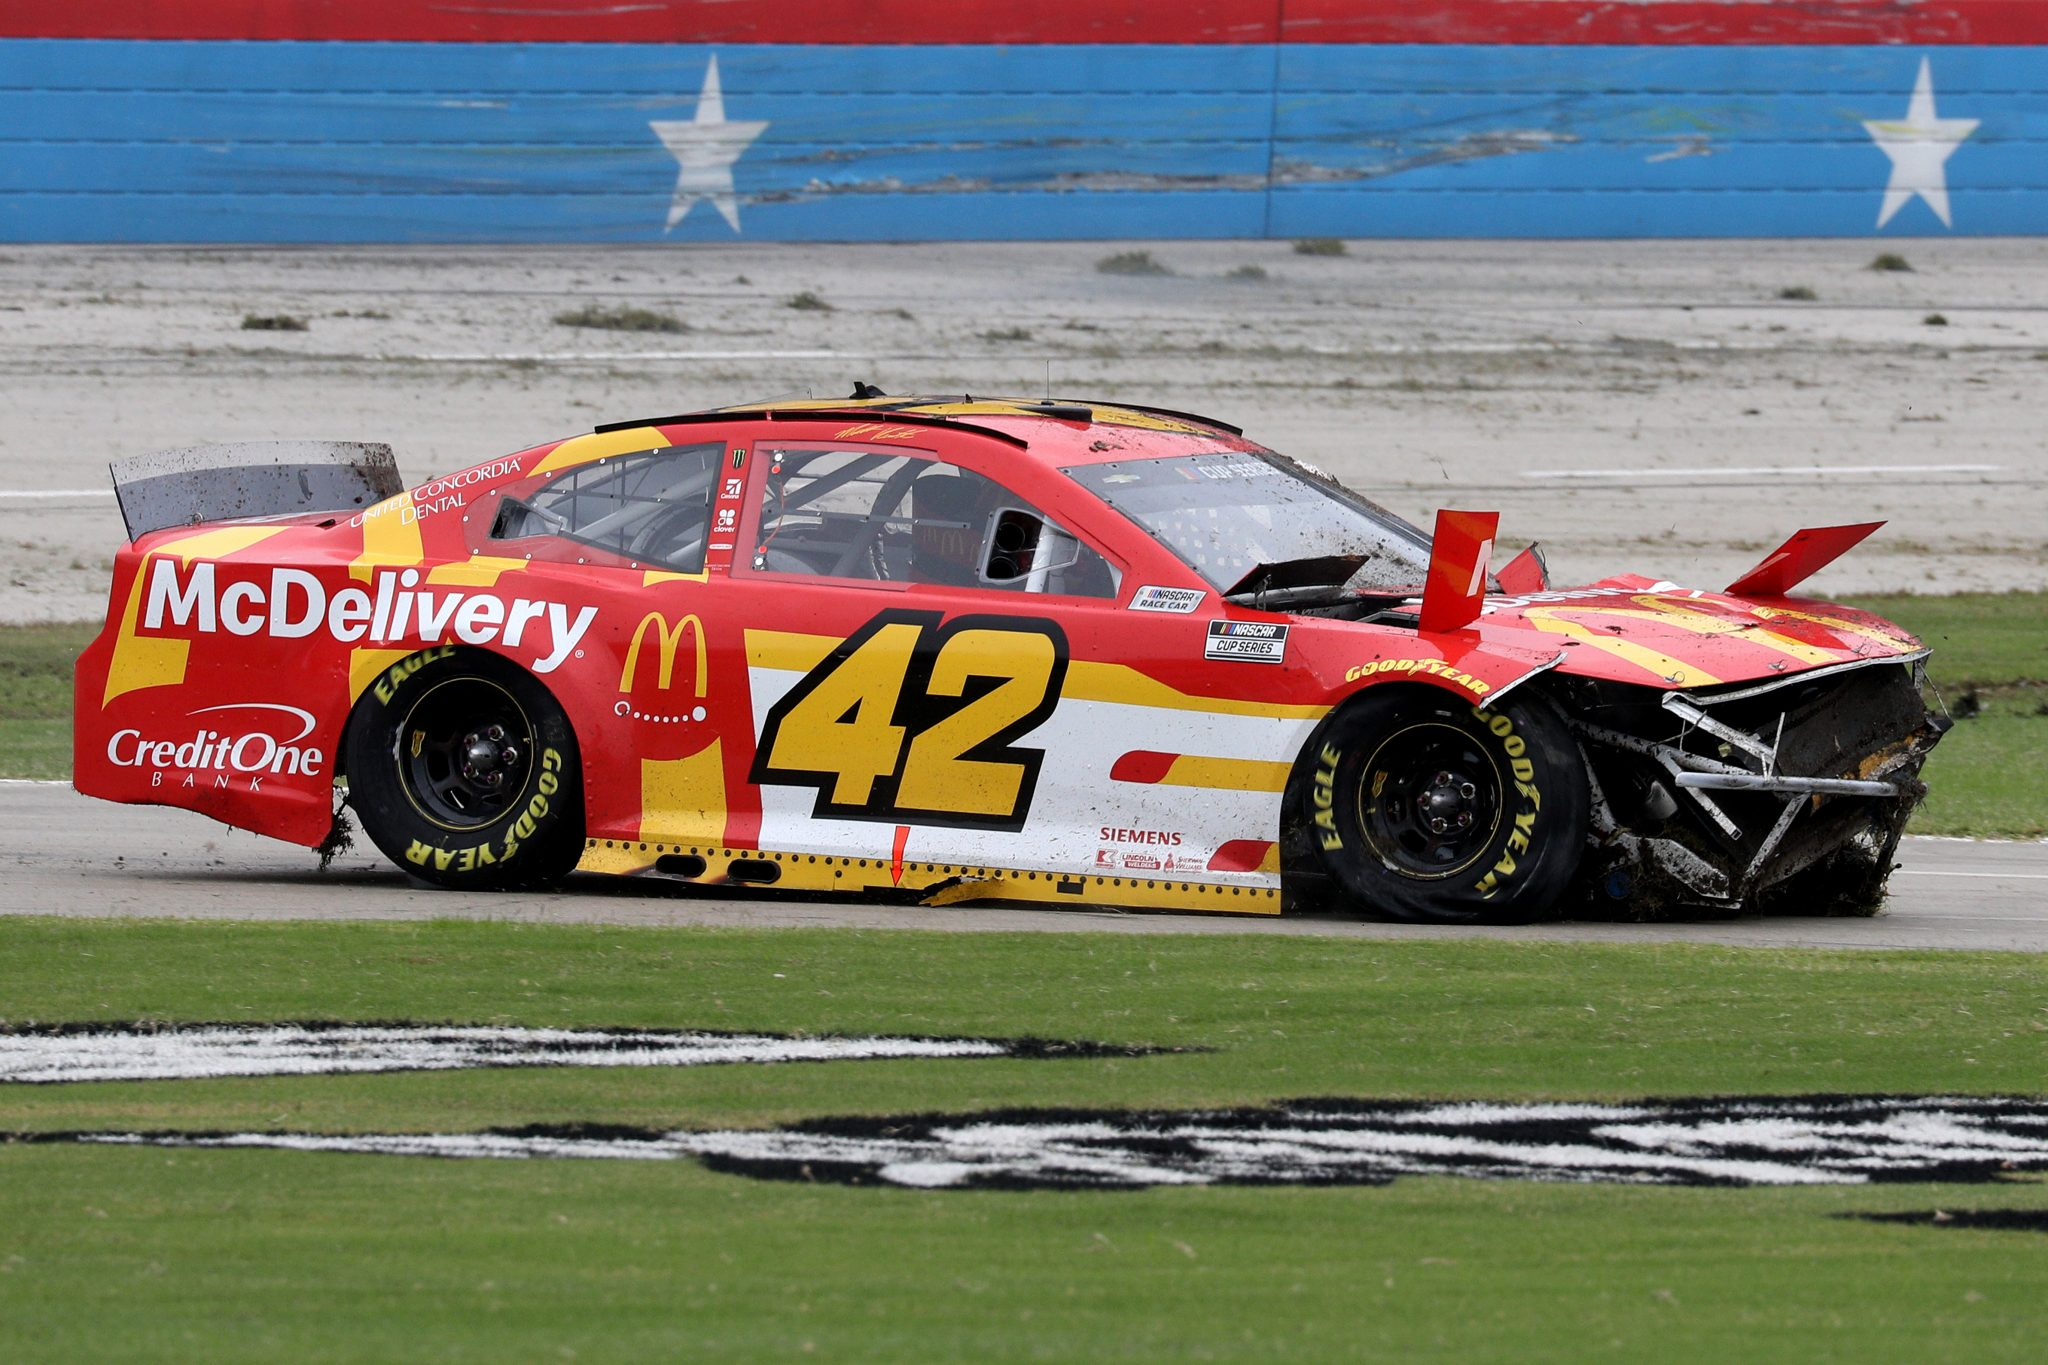 FORT WORTH, TEXAS - OCTOBER 28: Matt Kenseth, driver of the #42 McDonald's Chevrolet, spins into the infield grass after an on-track incident during the NASCAR Cup Series Autotrader EchoPark Automotive 500 at Texas Motor Speedway on October 28, 2020 in Fort Worth, Texas. (Photo by Chris Graythen/Getty Images) | Getty Images